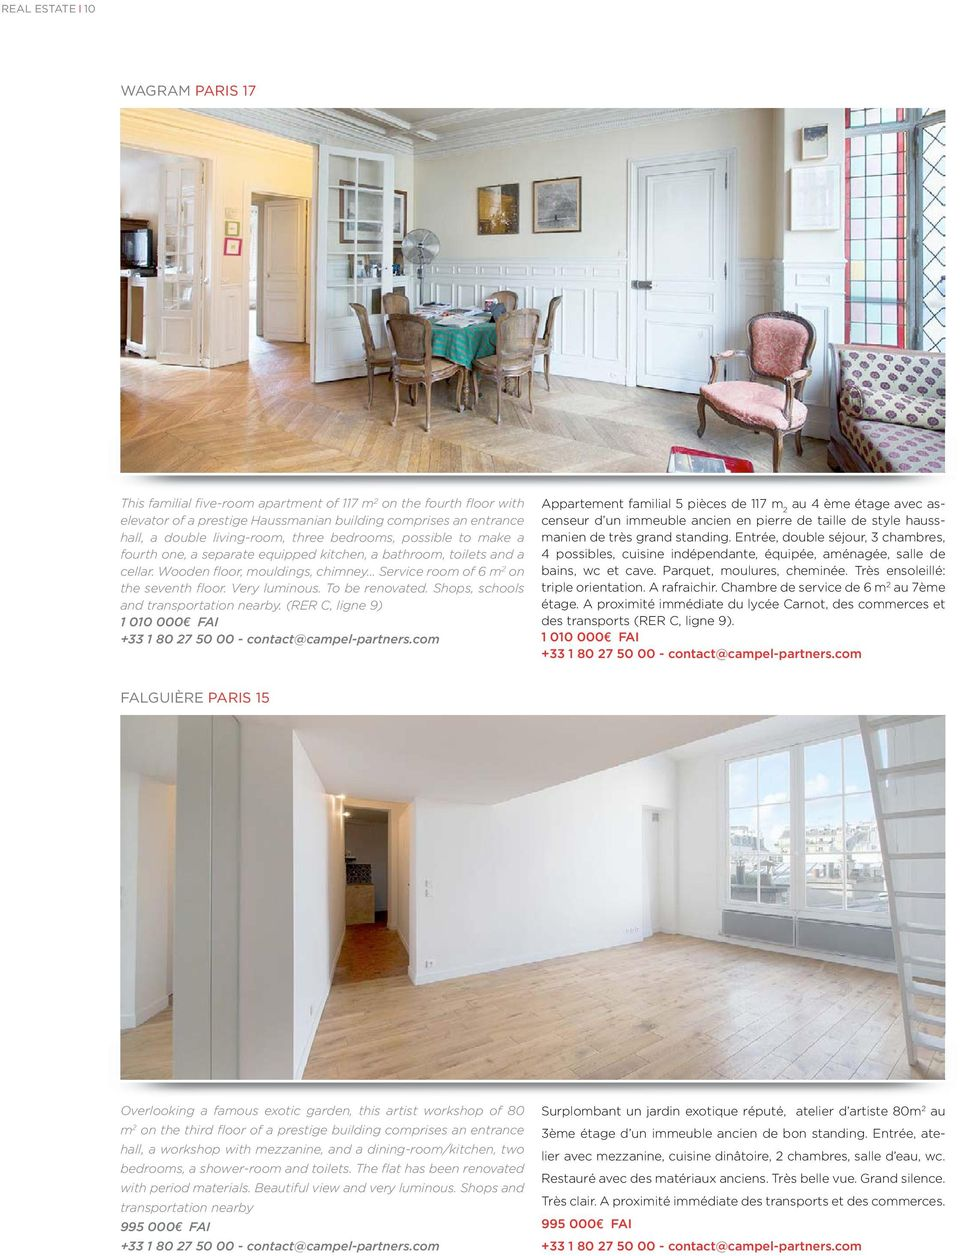 Very luminous. To be renovated. Shops, schools and transportation nearby. (RER C, ligne 9) 1 010 000 FAI +33 1 80 27 50 00 - contact@campel-partners.